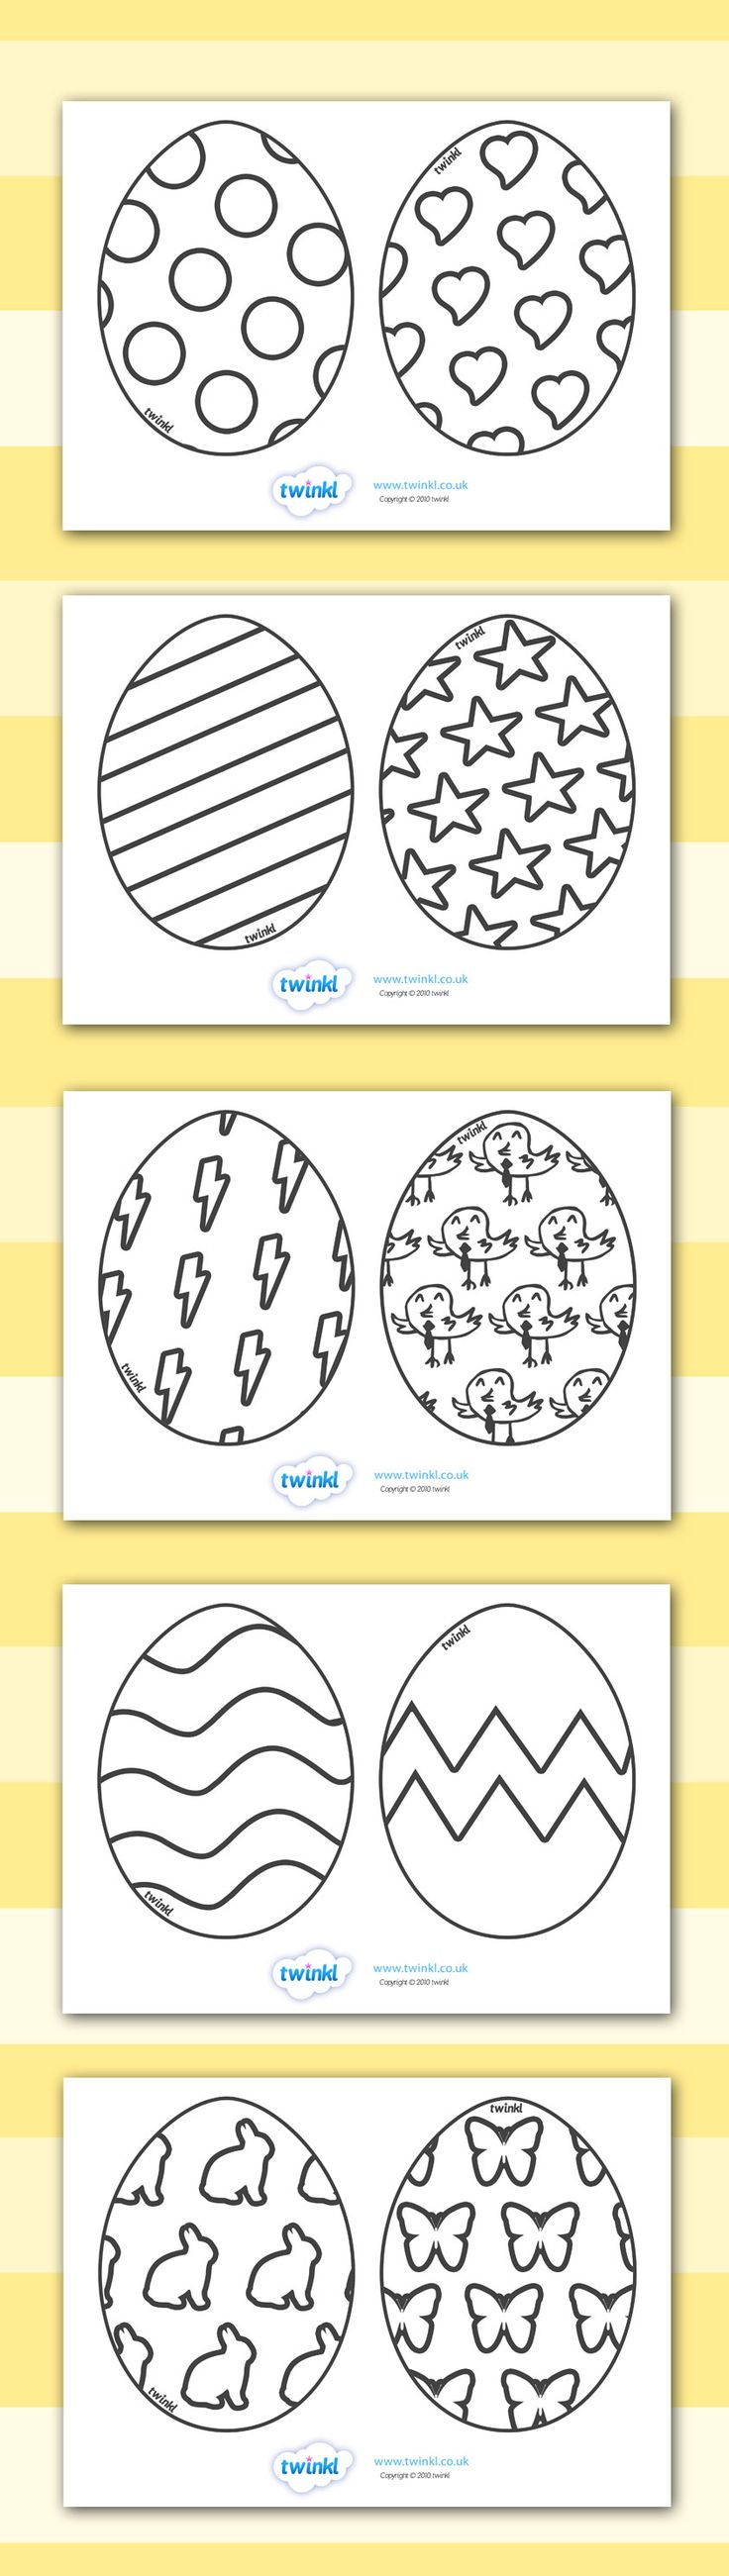 Twinkl Resources >> free printables. Easter Egg Templates >> Printable resources for Primary, EYFS, KS1 and SEN.  Thousands of classroom displays and teaching aids! Topics, Easter, Colouring, Easter Eggs